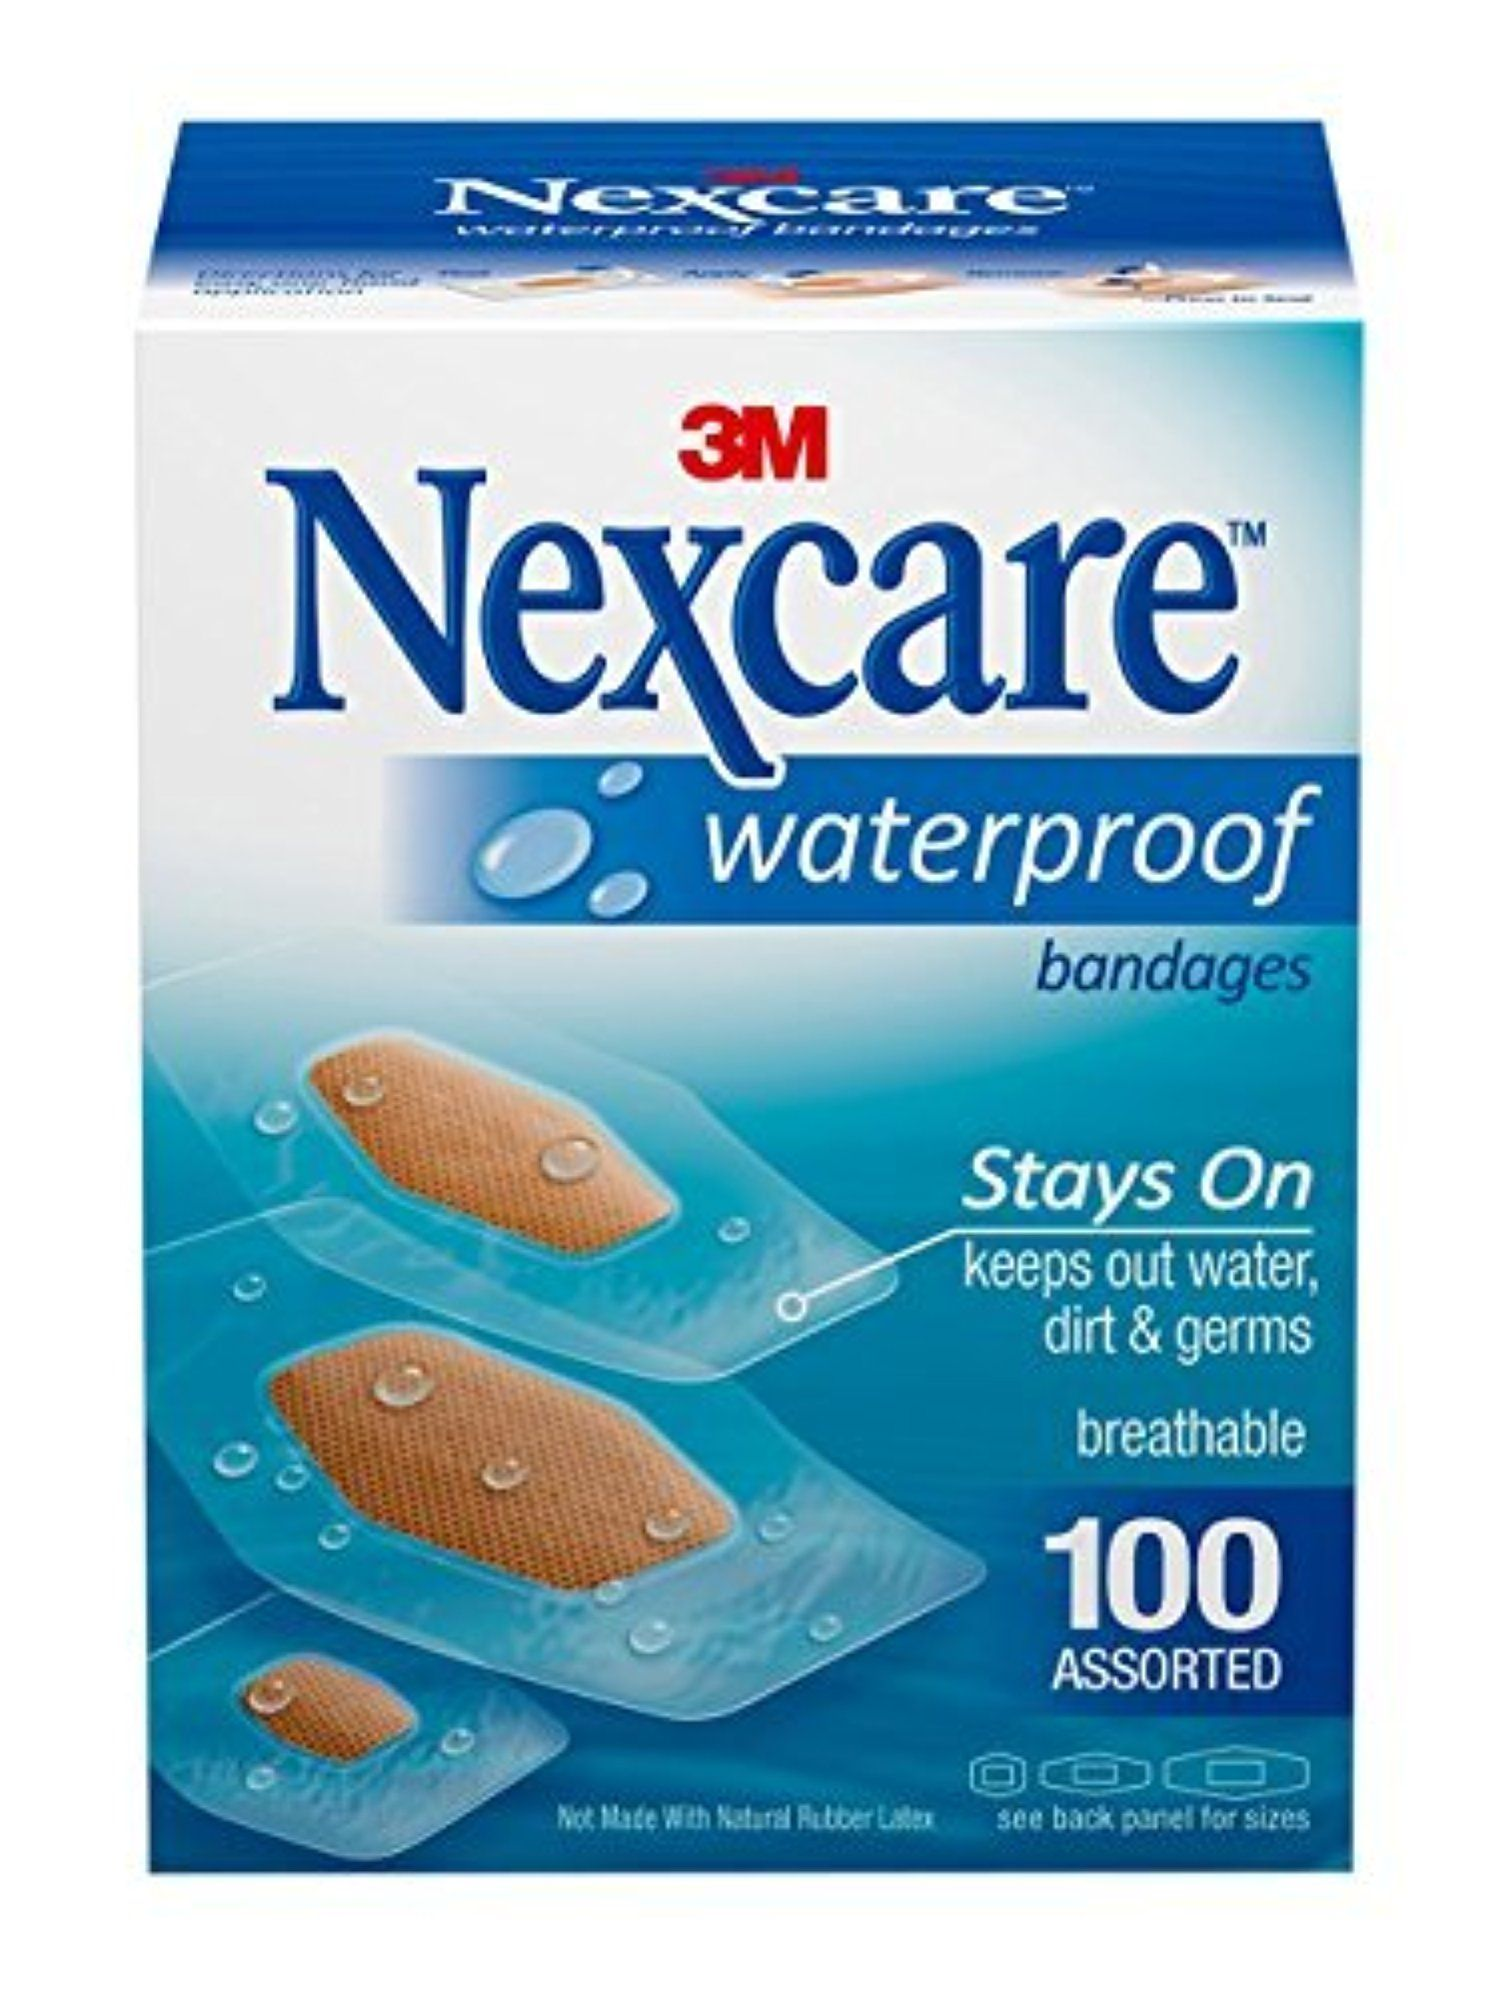 3m Nexcare Waterproof Assorted Bandages 100 Count By Nexcare